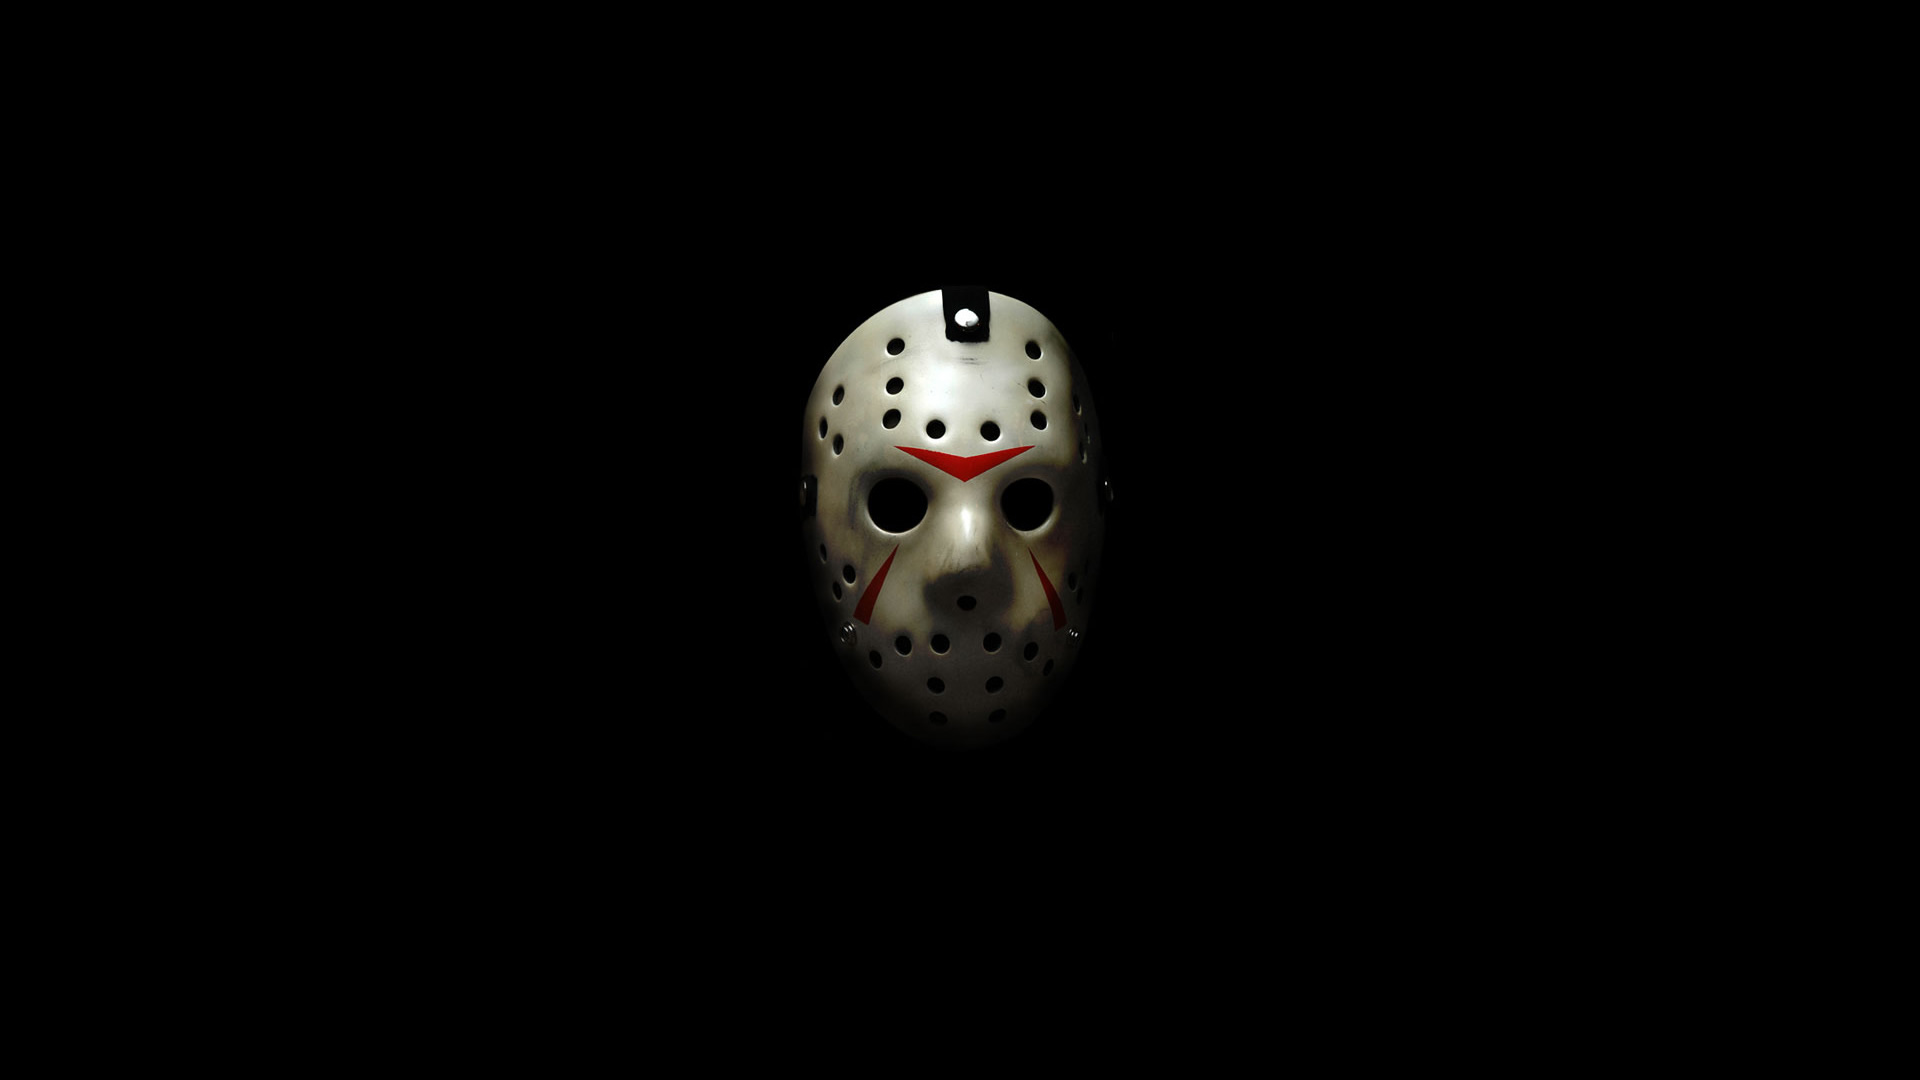 Free Download Friday The 13th Mask Hd Wallpaper Fullhdwpp Full Hd